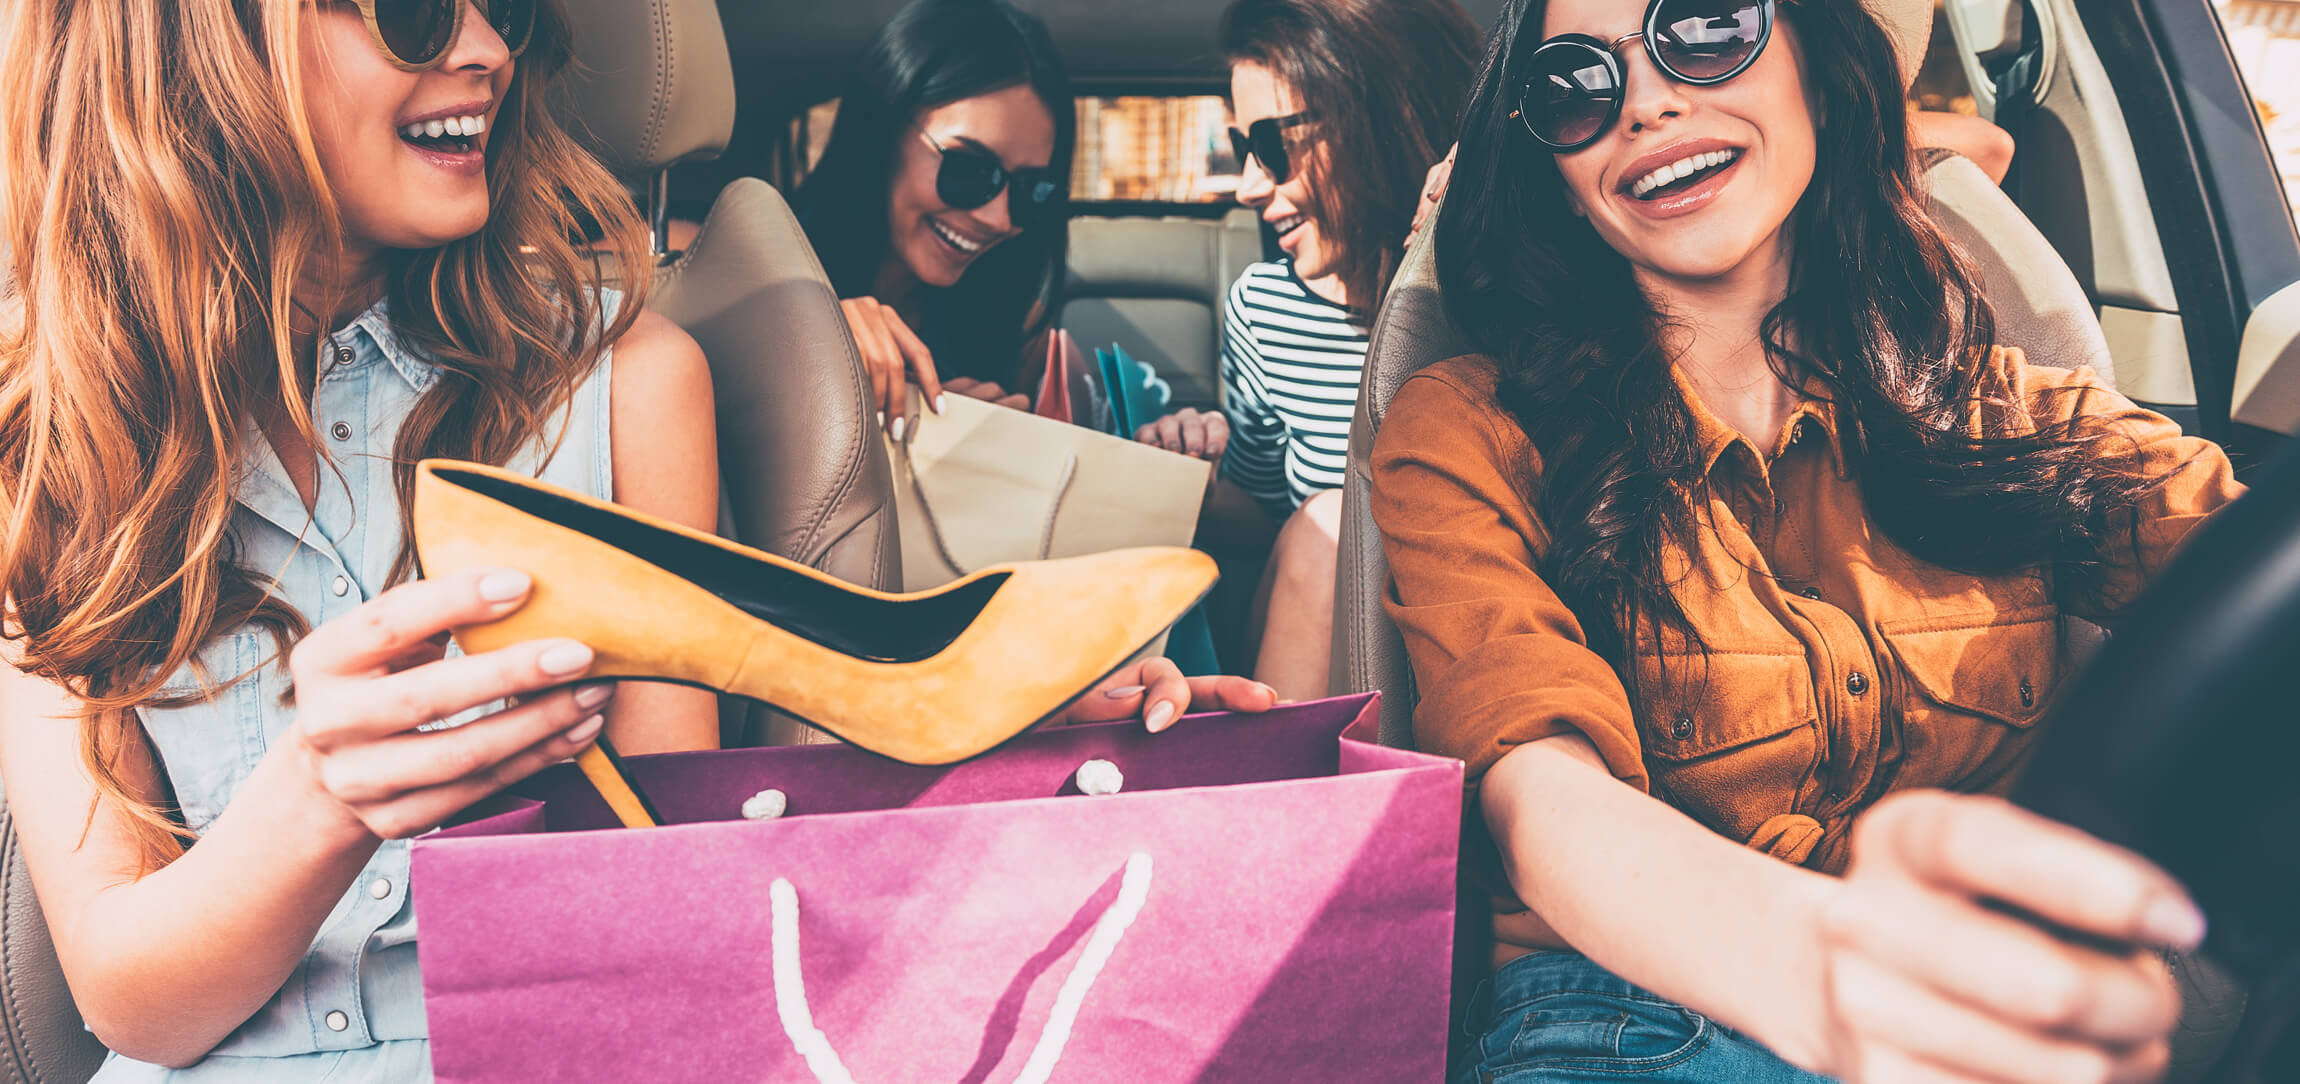 64% OF SHOPPERS SAID EXPERIENCES ARE MORE IMPORTANT THAN PRODUCTS.